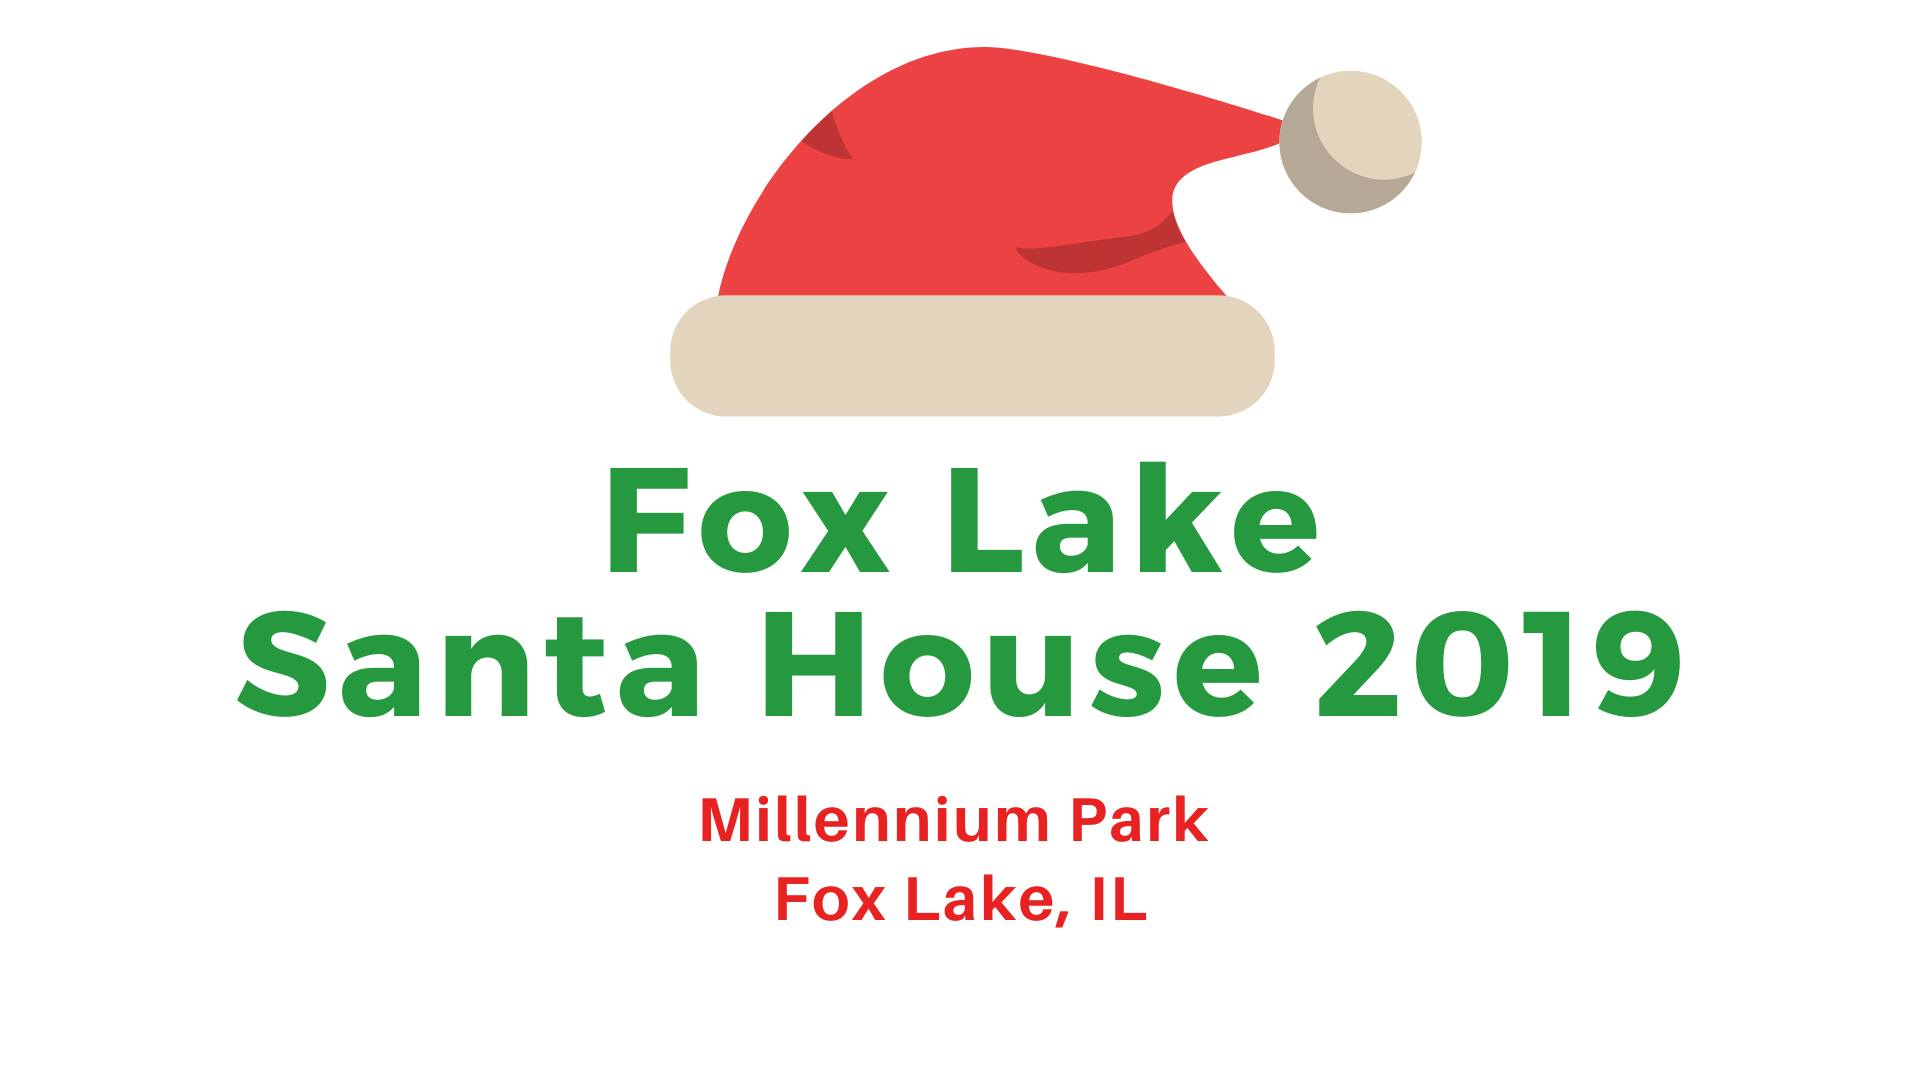 Fox Lake Santa House